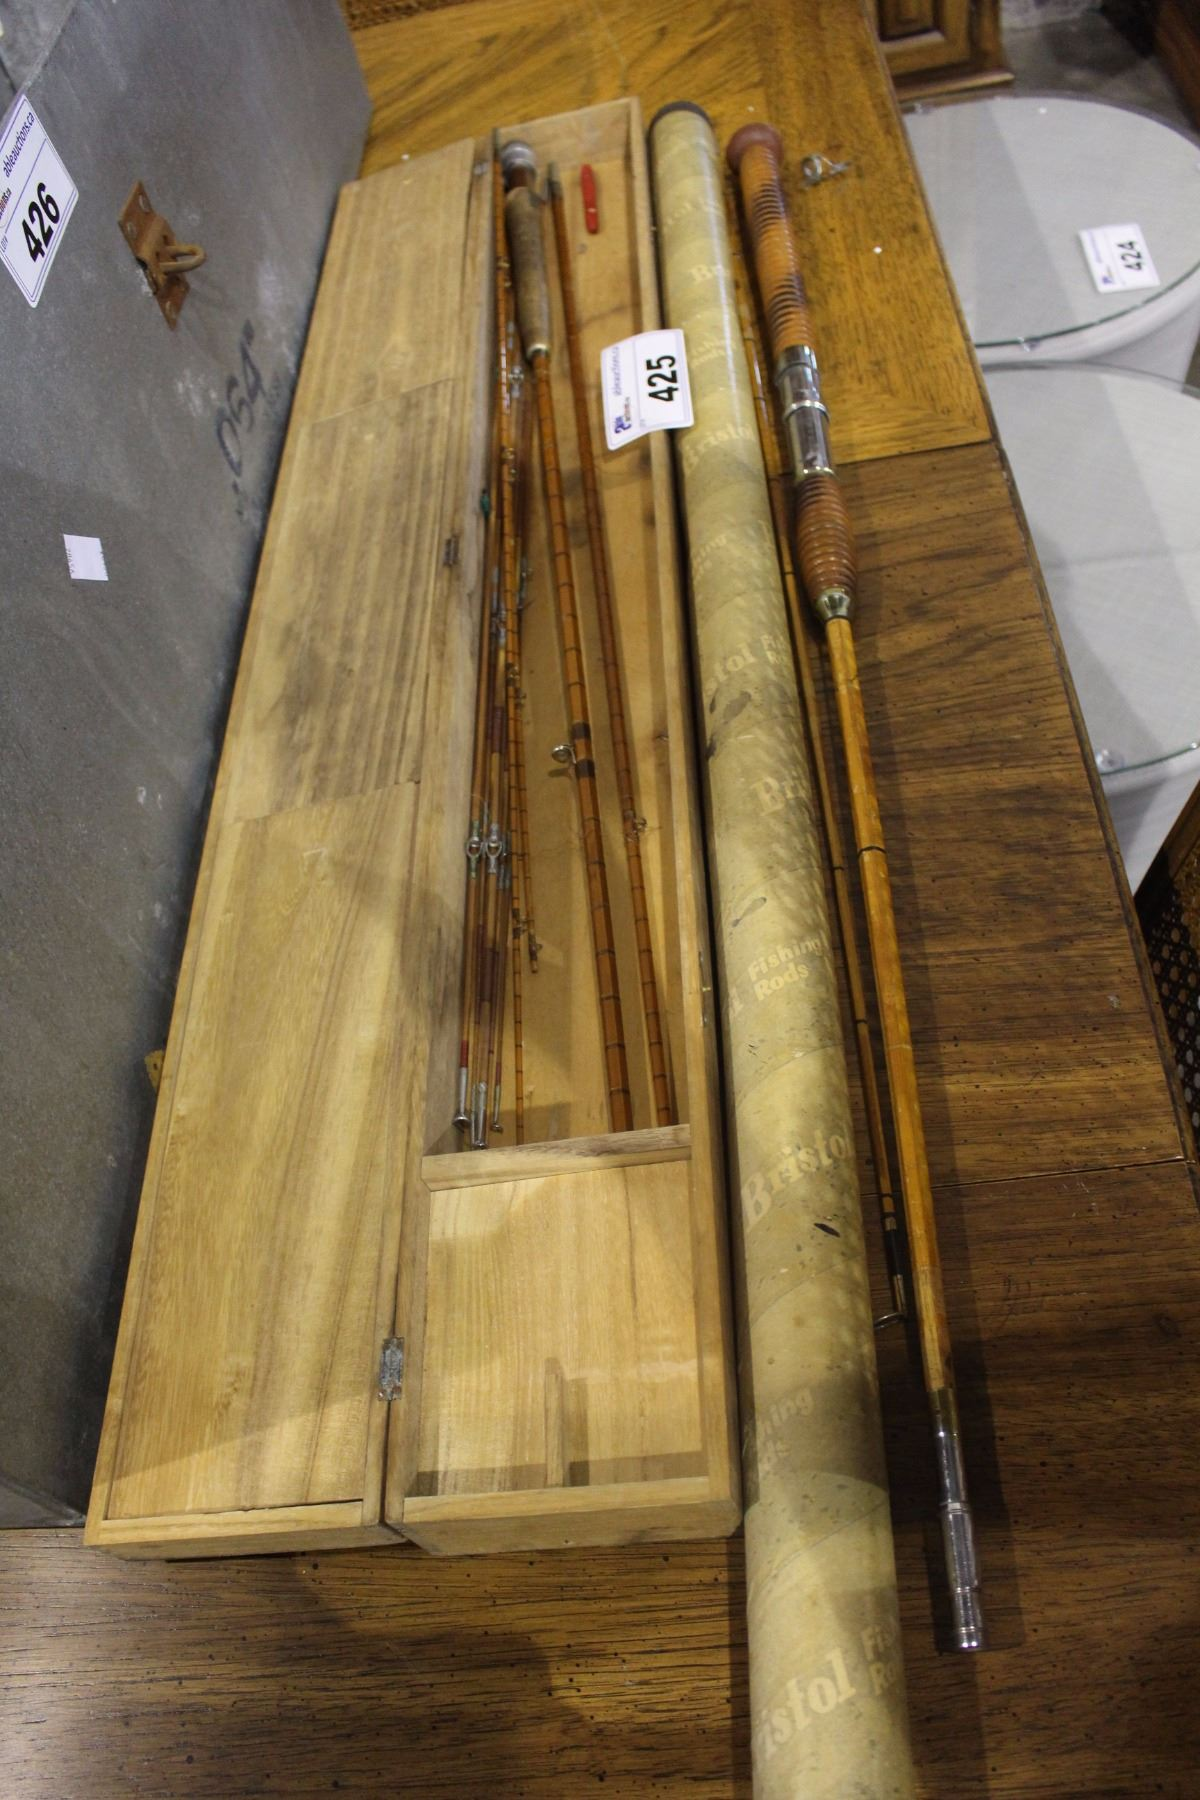 PAIR OF HARDY BROTHERS FISHING RODS, FLY ROD AND MOOCHING